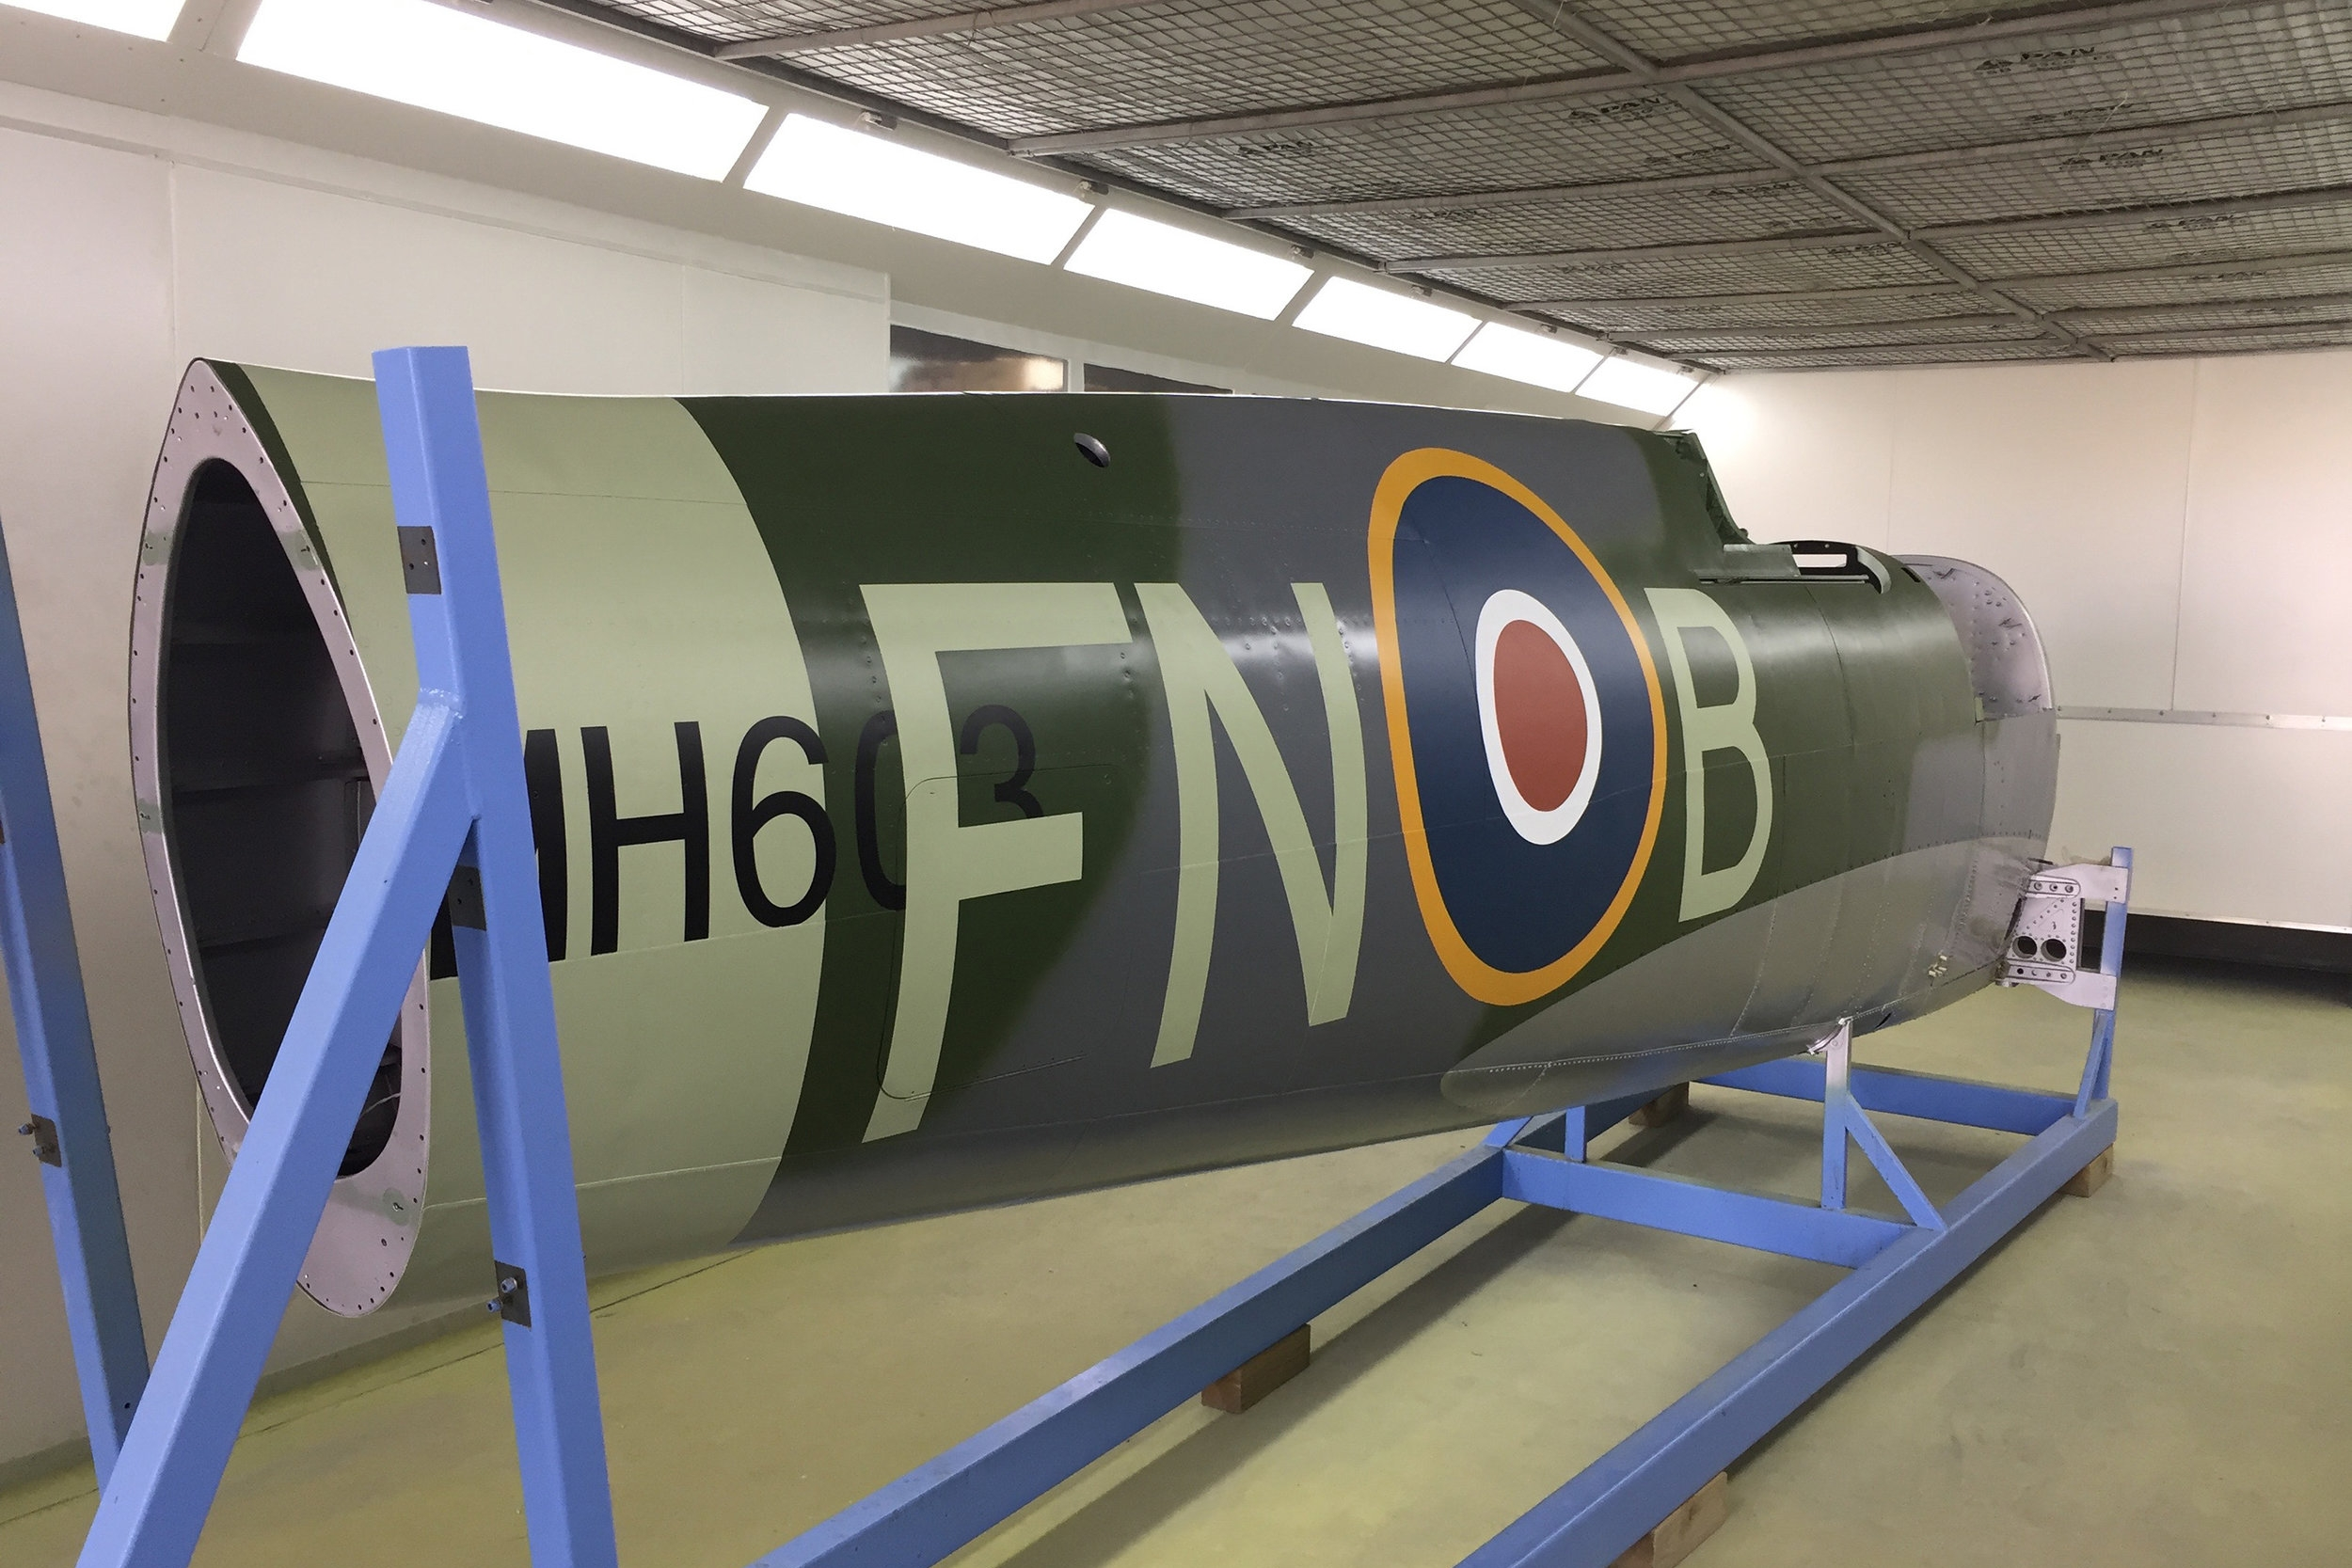 MH603 fuselage in the paint booth after application of markings.